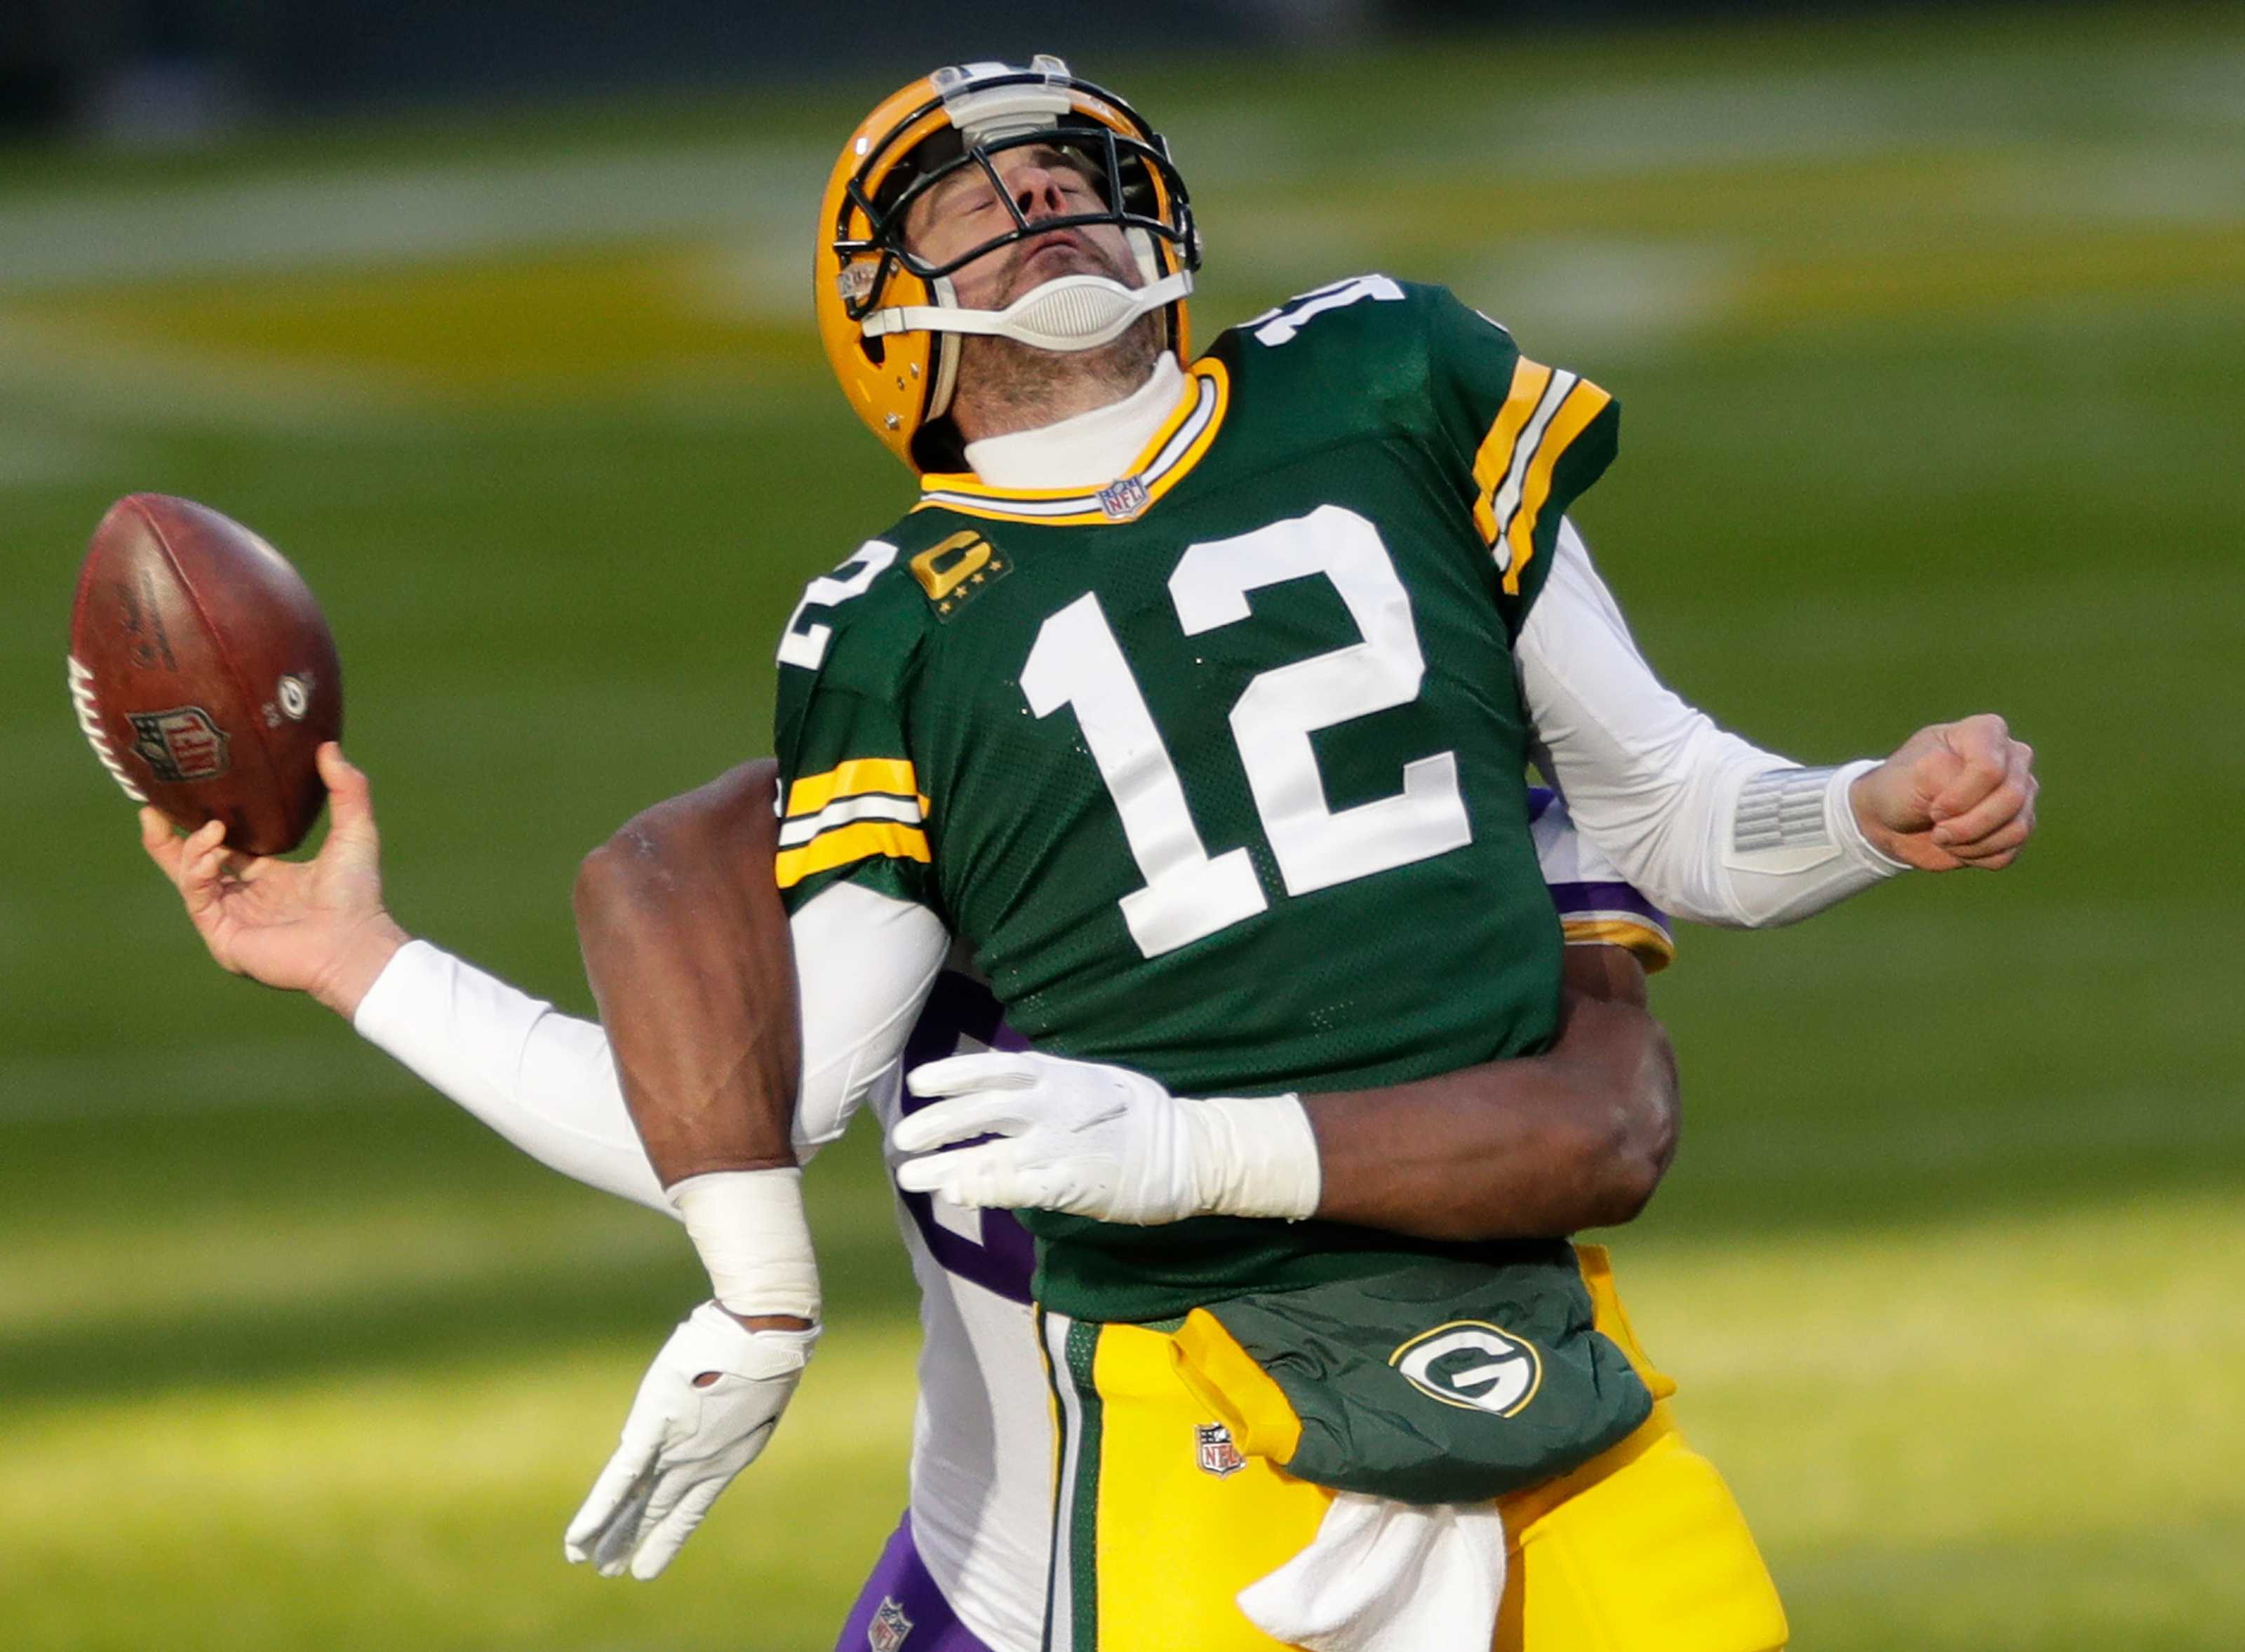 Yes, the LA Rams defense will cause headaches for Packers QB Rodgers